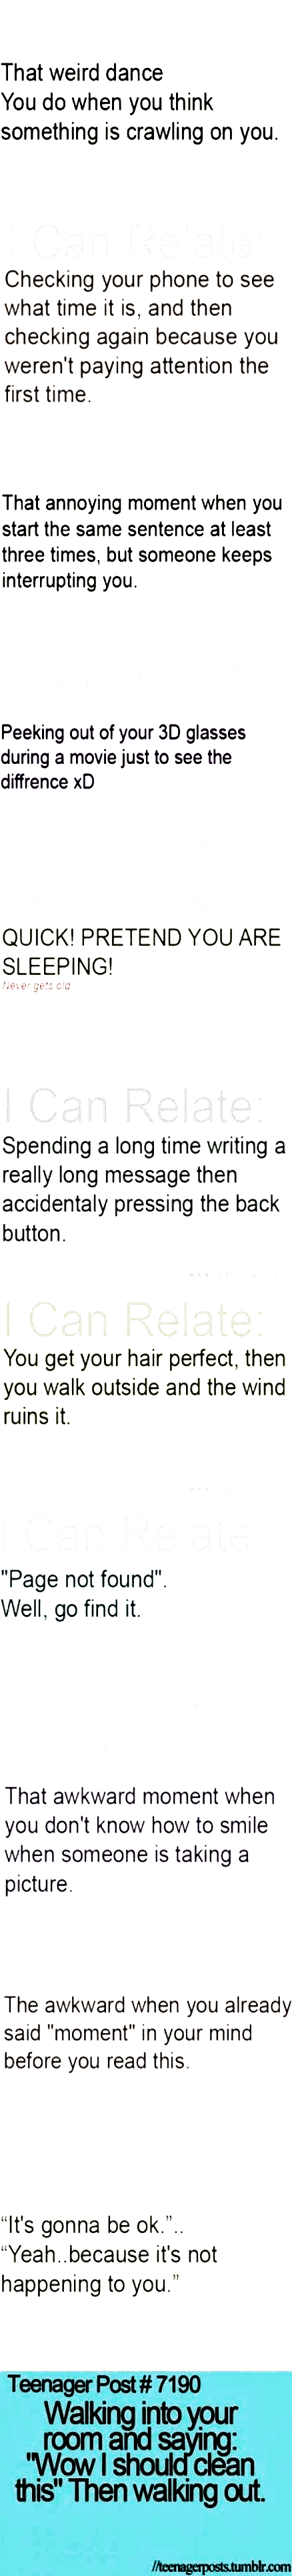 funny life quotes humor awkward moments funny life quotes humor - funny life quotes humor